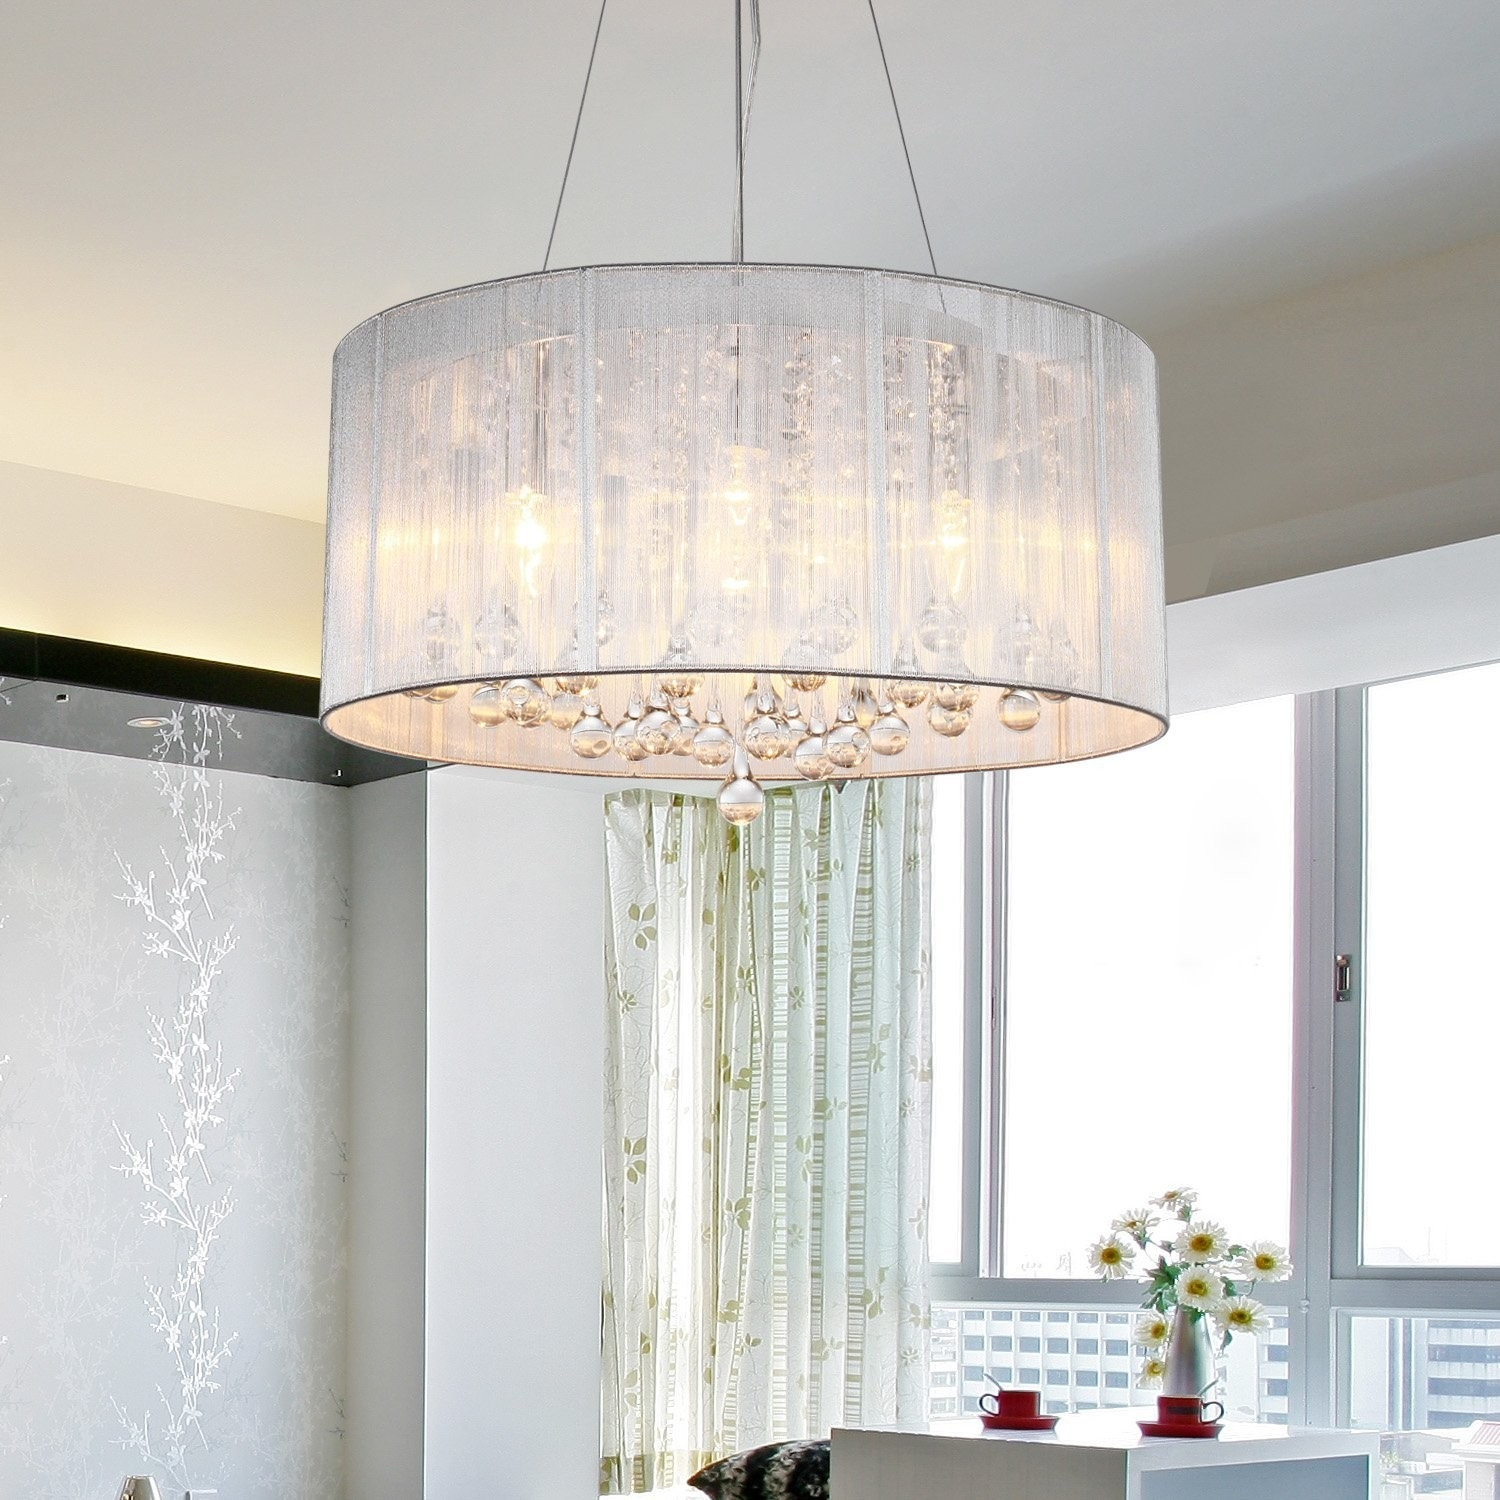 Modern Crystal Pendant Light In Cylinder Shade Drum Style Home Throughout Fabric Drum Shade Chandeliers (Image 20 of 25)